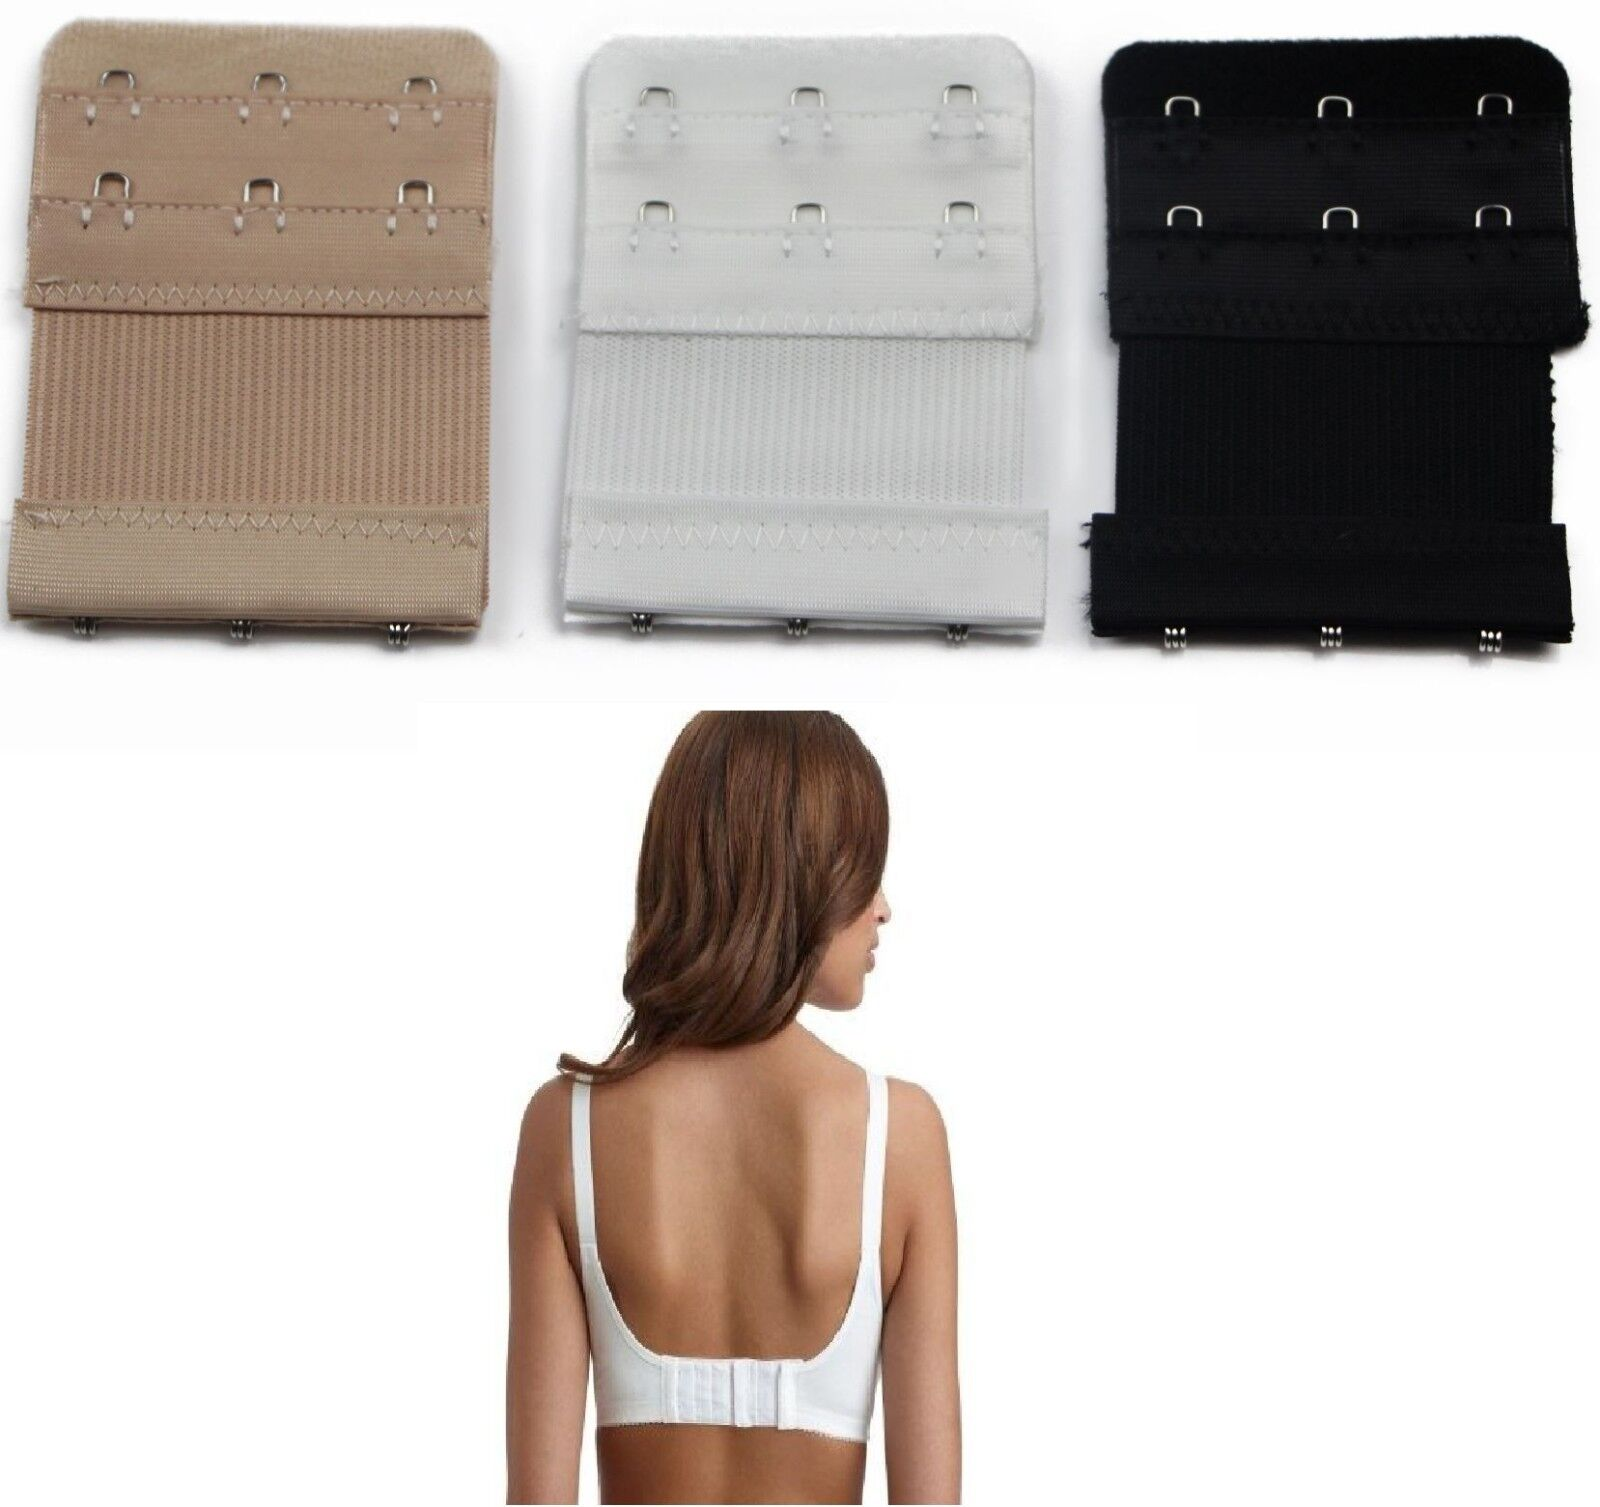 82ae967785 Details about Bra Extender Extension 3 Hook PACK OF 3 Clip On Strap Elastic  Black White Nude